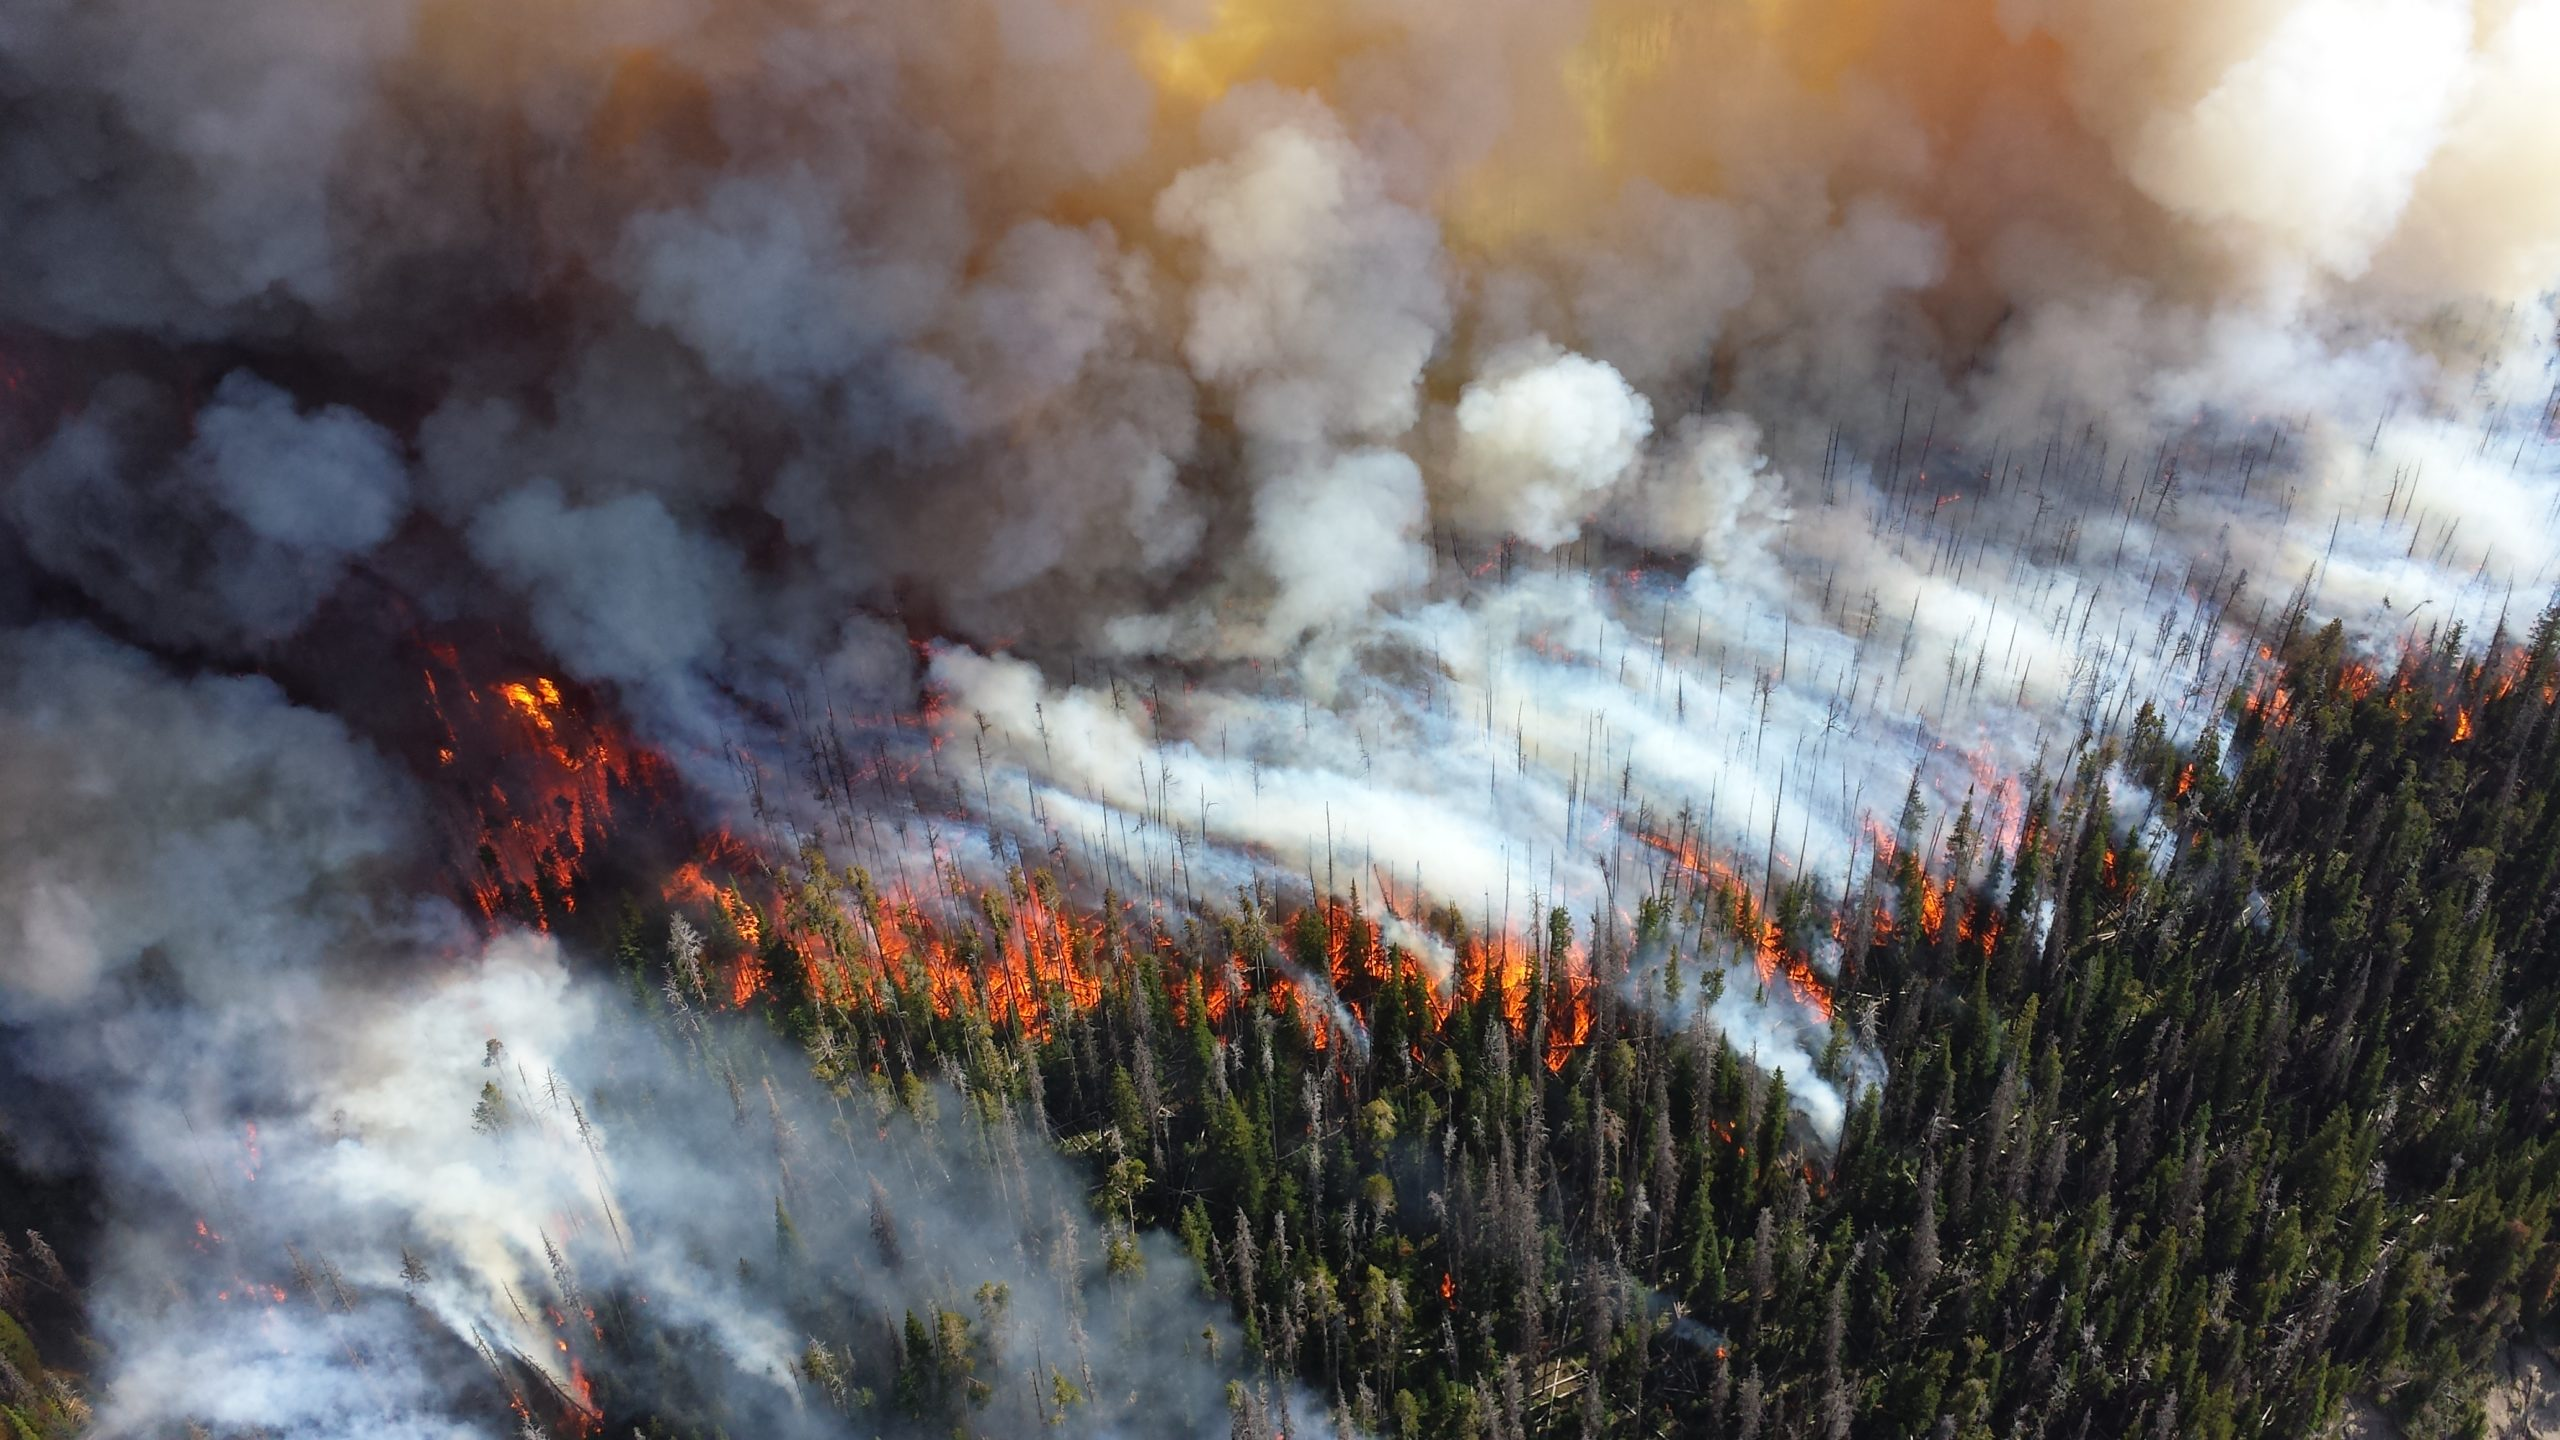 Photograph from a bird's eye view of fire spreading through a forest. The burning trees appear like candlesticks from afar, and white smoke hovers over the scene.